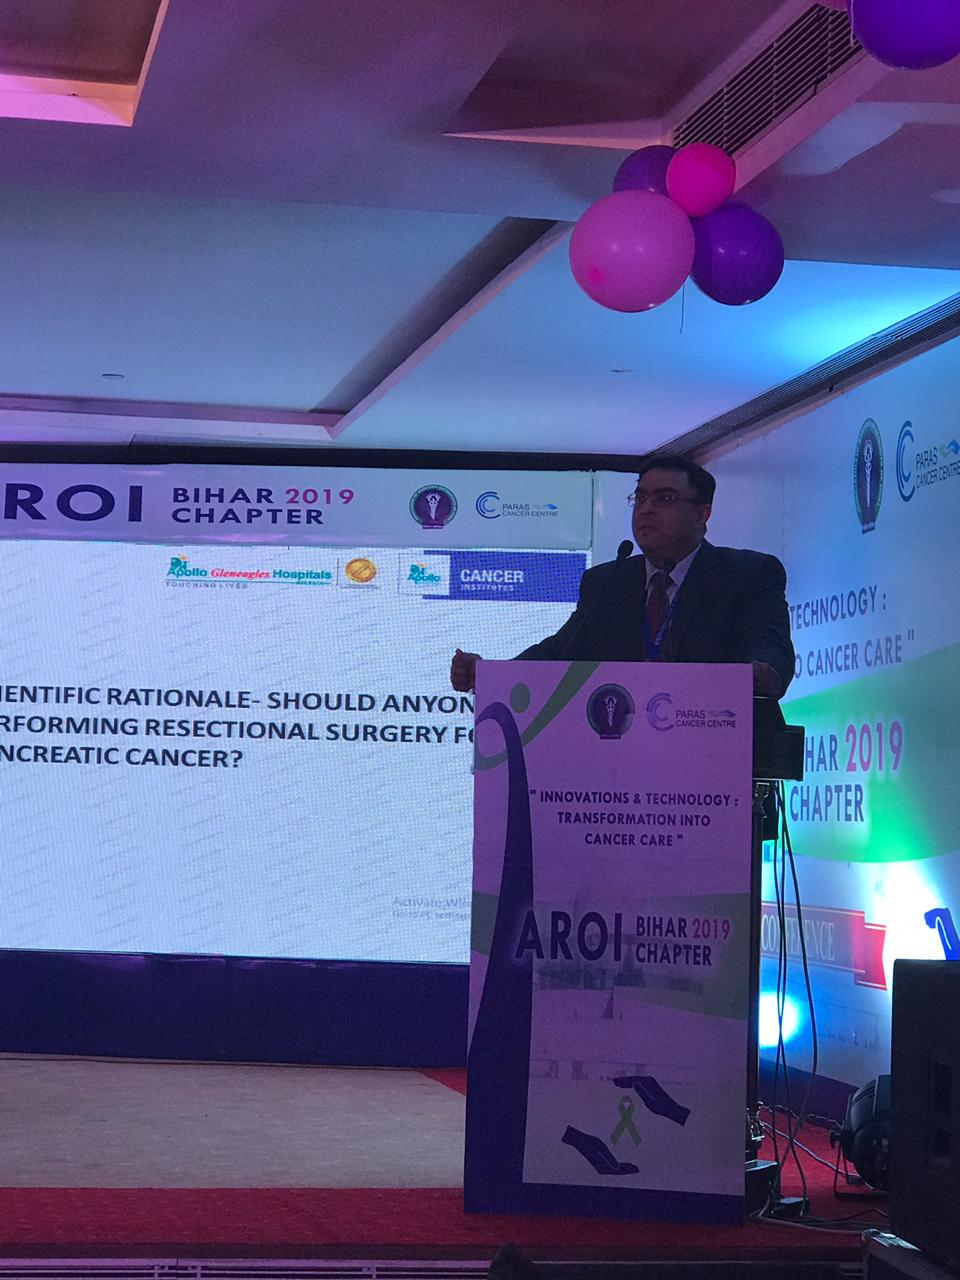 Addressing the Association of Radiation Oncologists of Bihar at Patna.